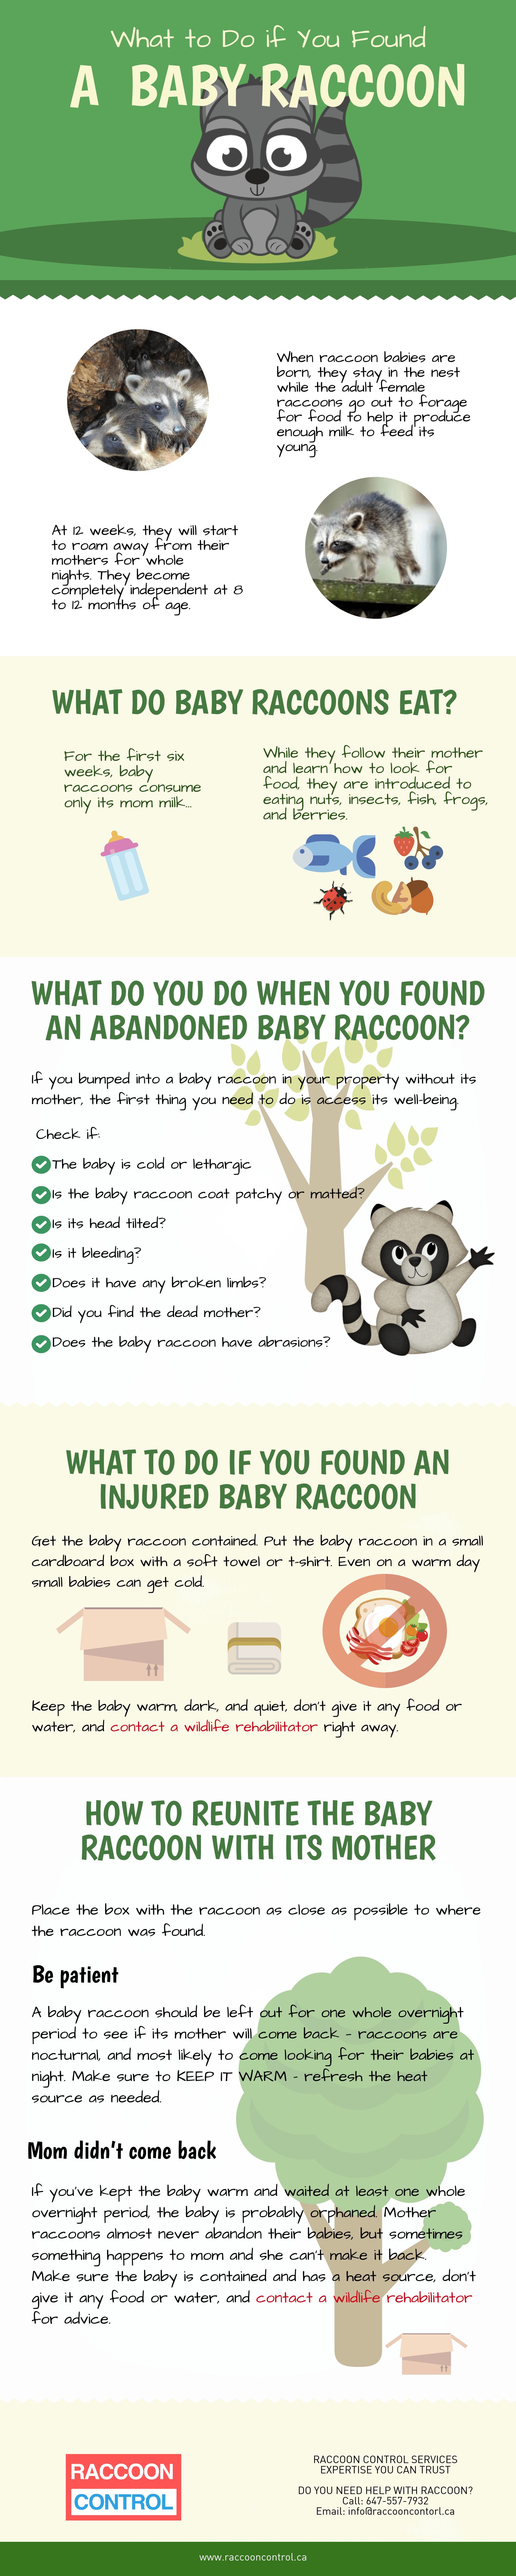 what-to-do-if-you-found-a-baby-raccoon-infographic-lkrllc